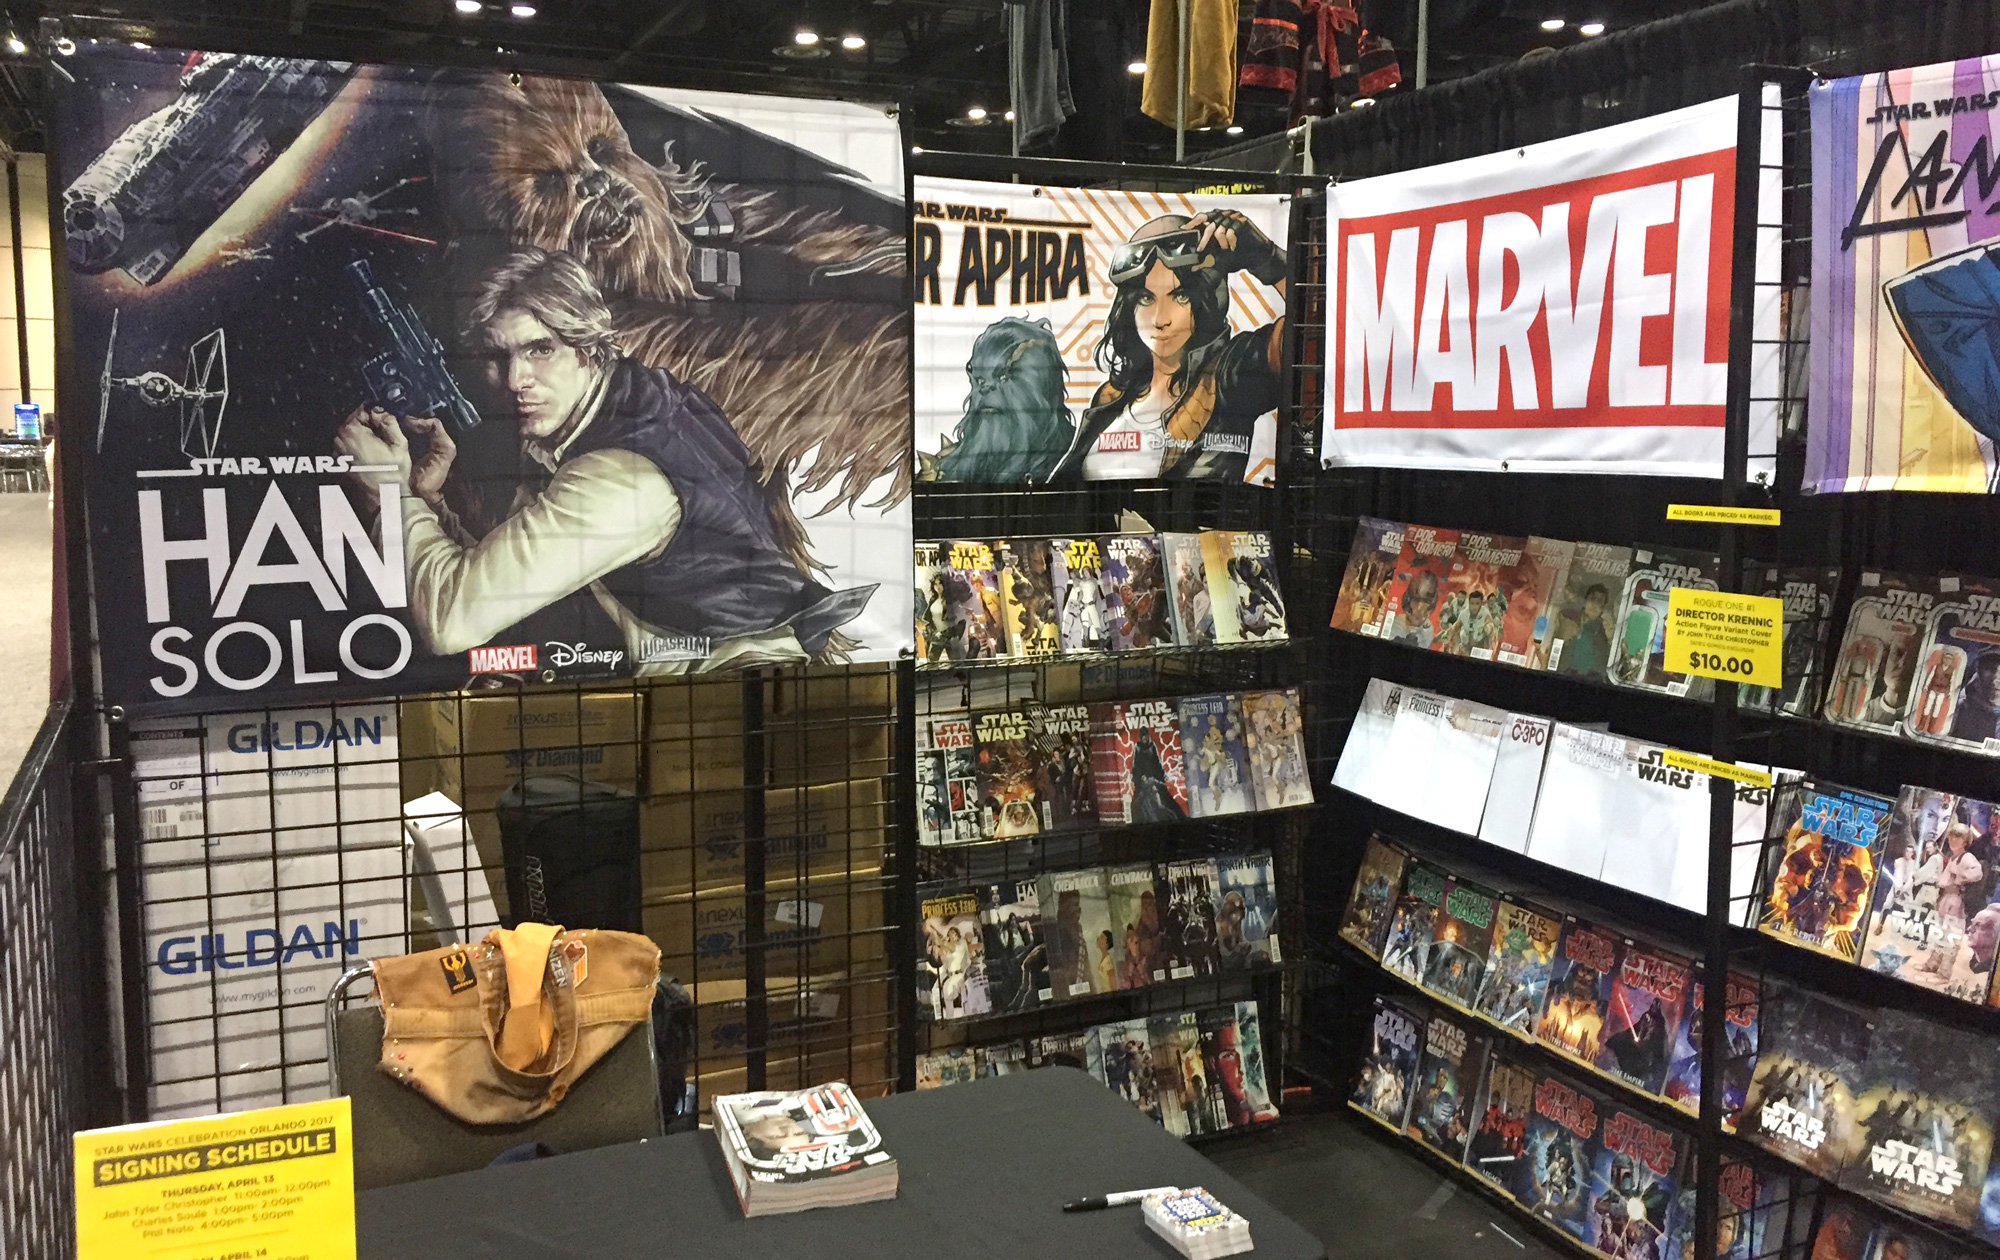 MarvelTatesBooth_0417_4